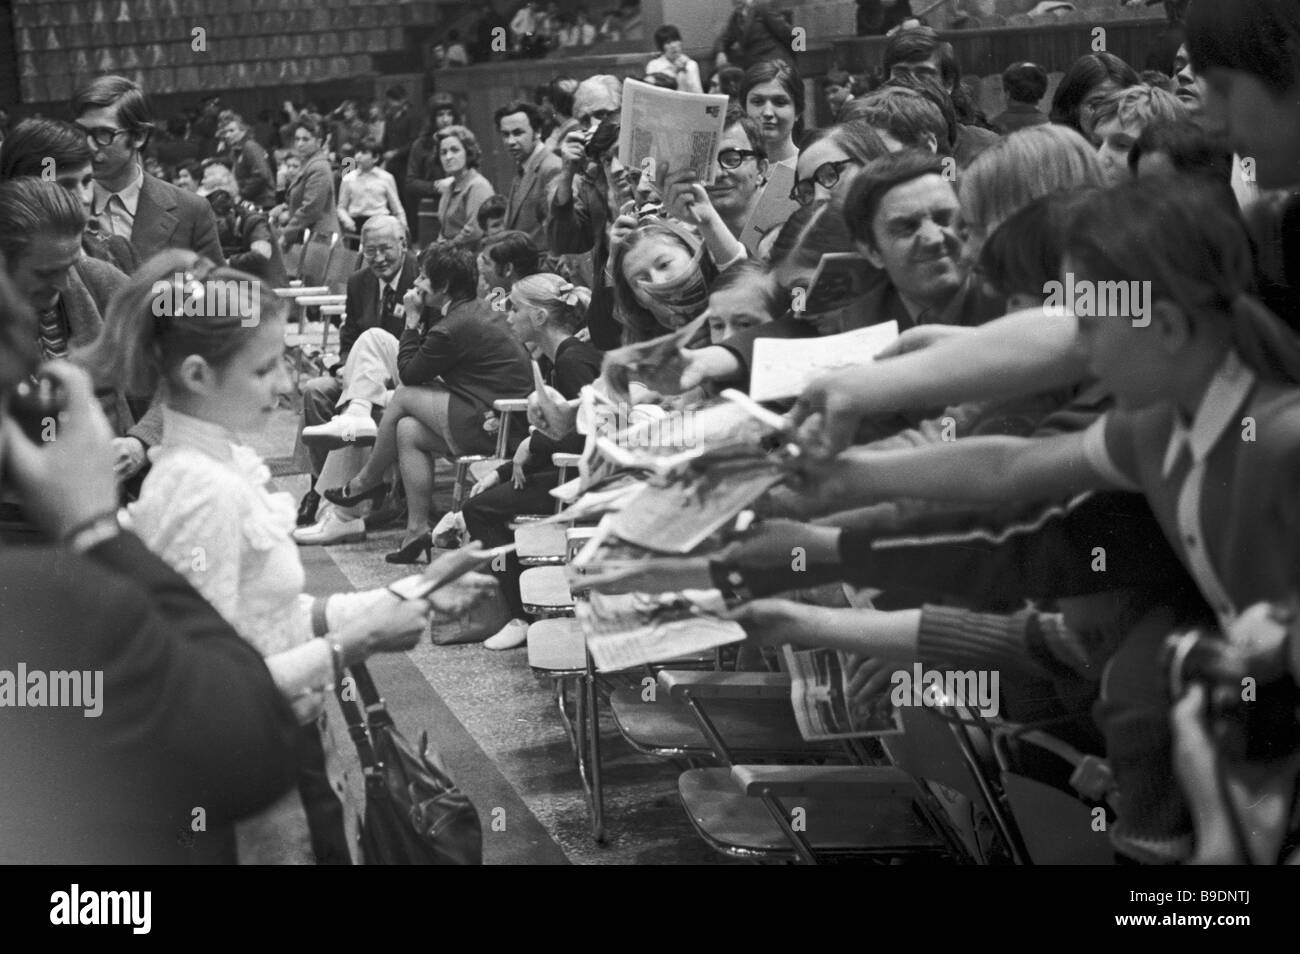 The USSR Merited Master of Sport Olga Korbut photographing to spectators and newsmen at the international artistic - Stock Image